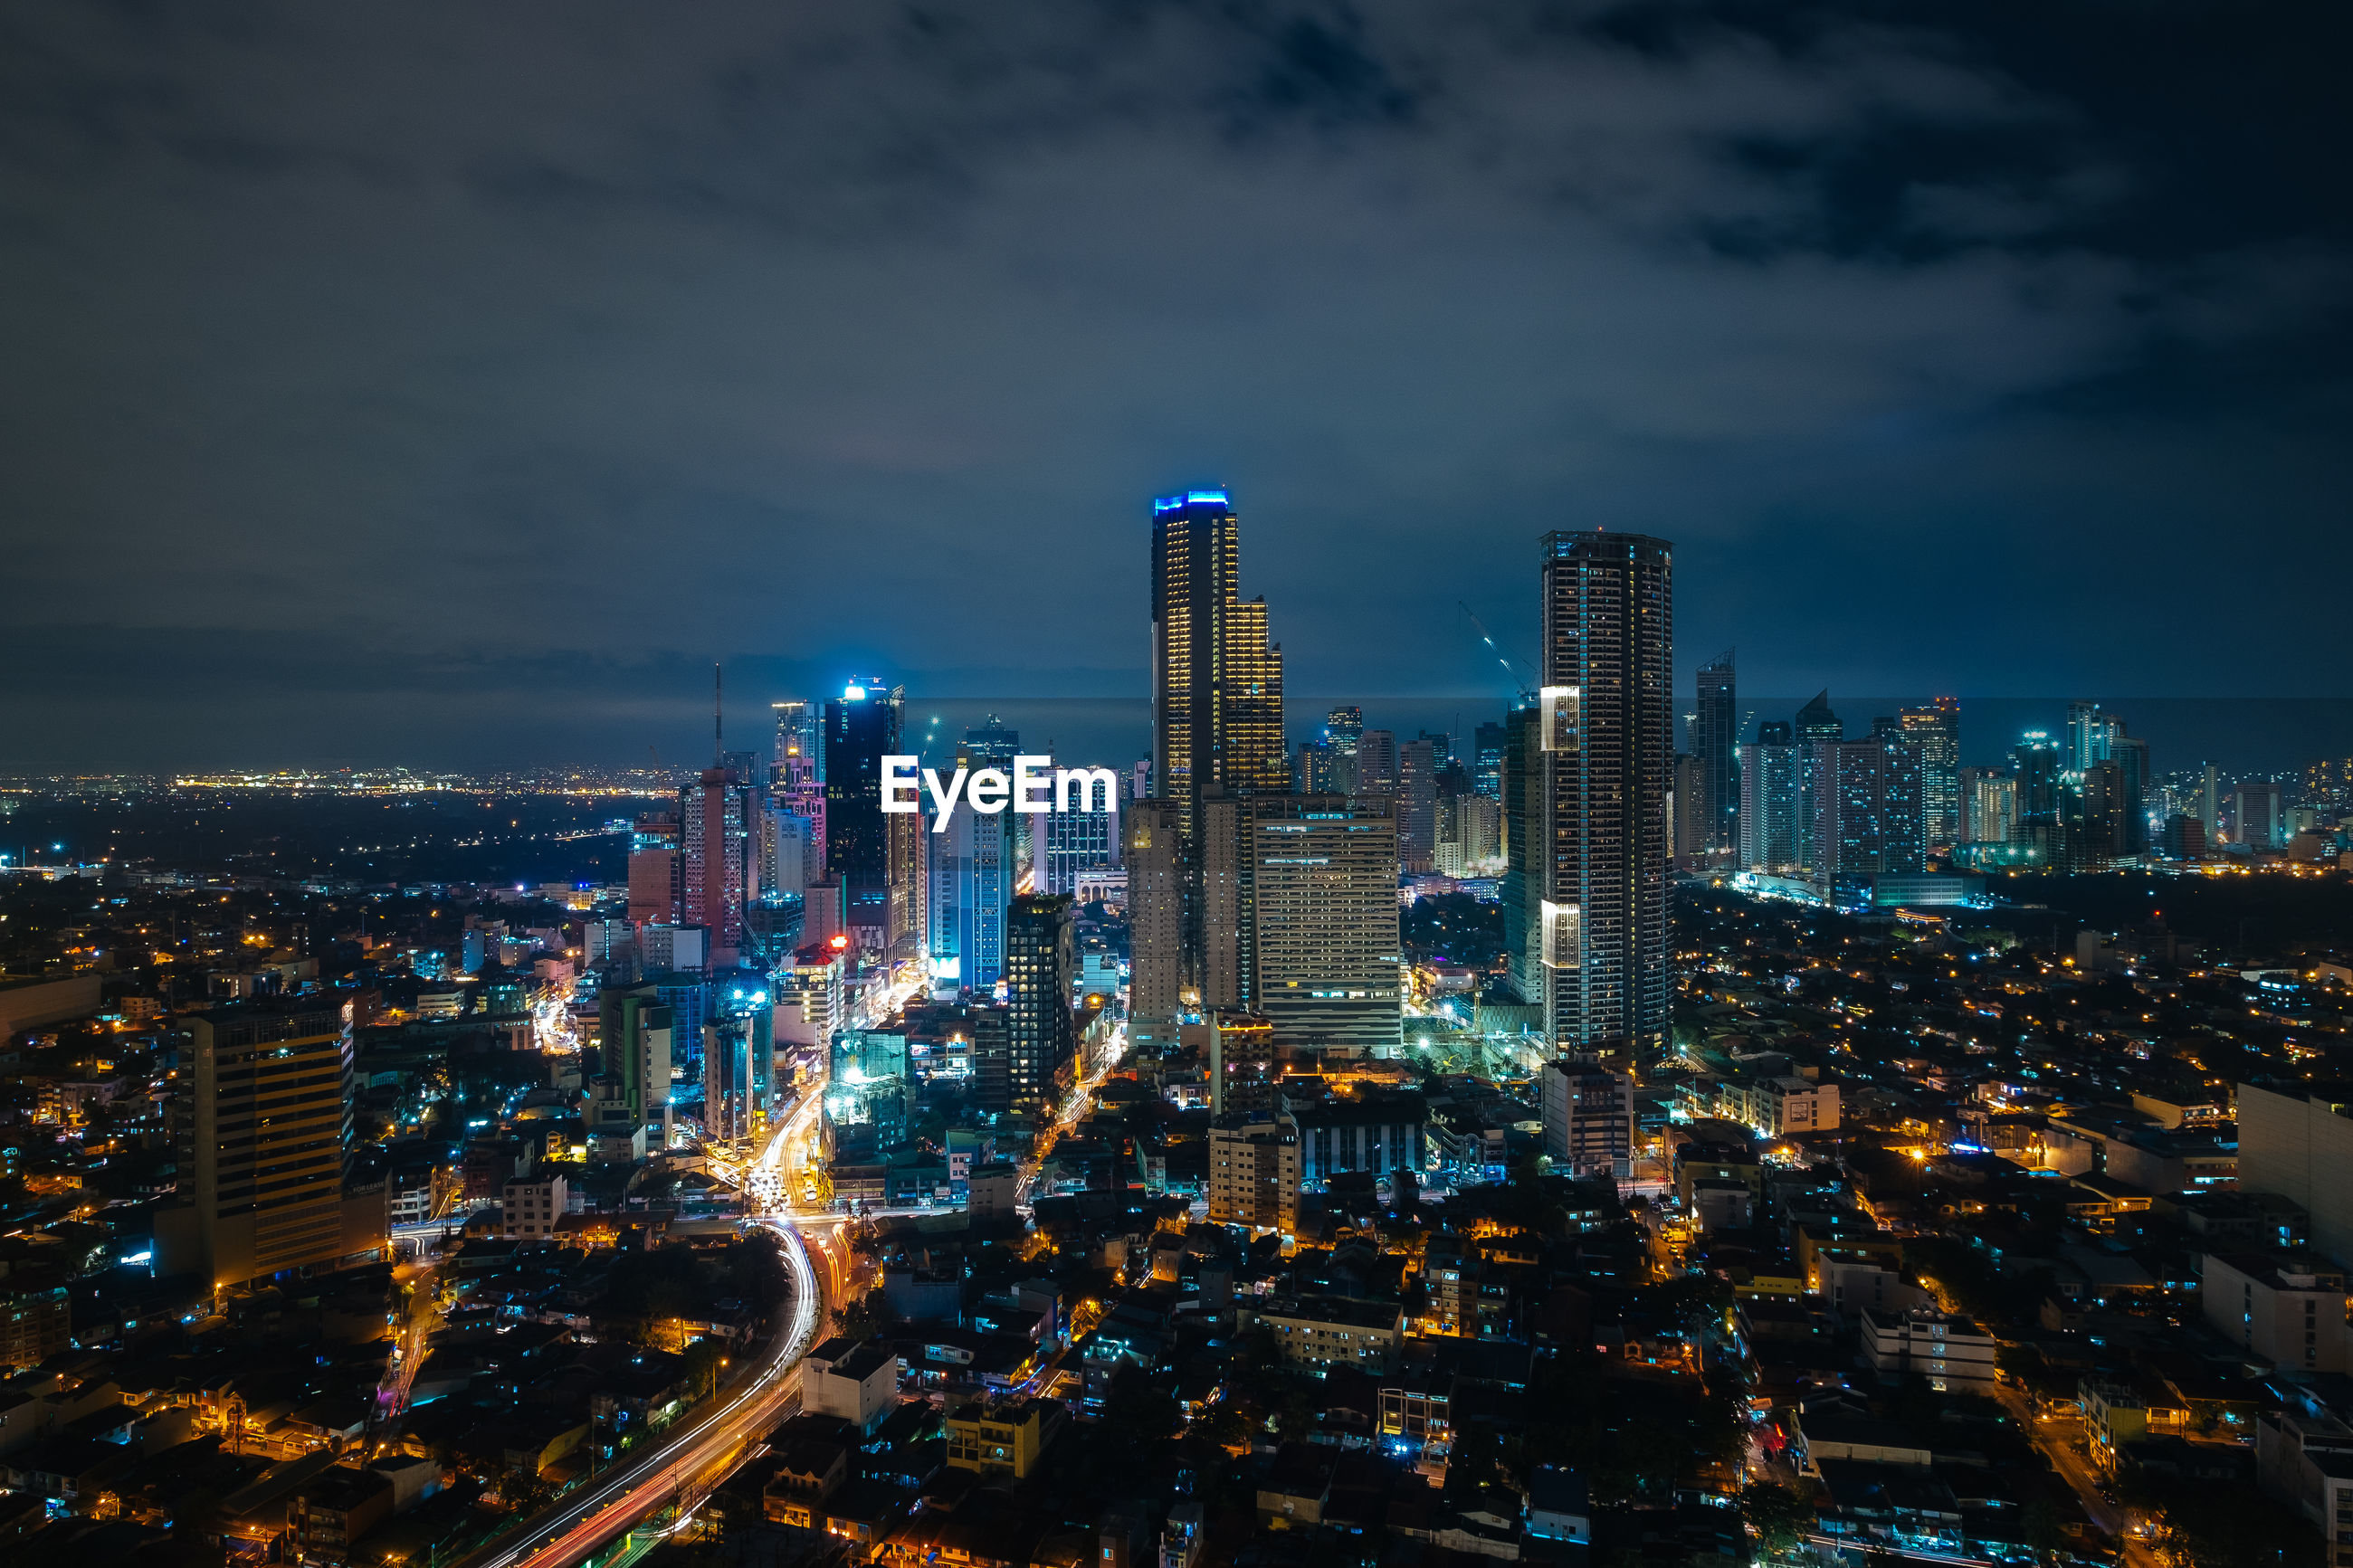 AERIAL VIEW OF ILLUMINATED CITYSCAPE AGAINST SKY